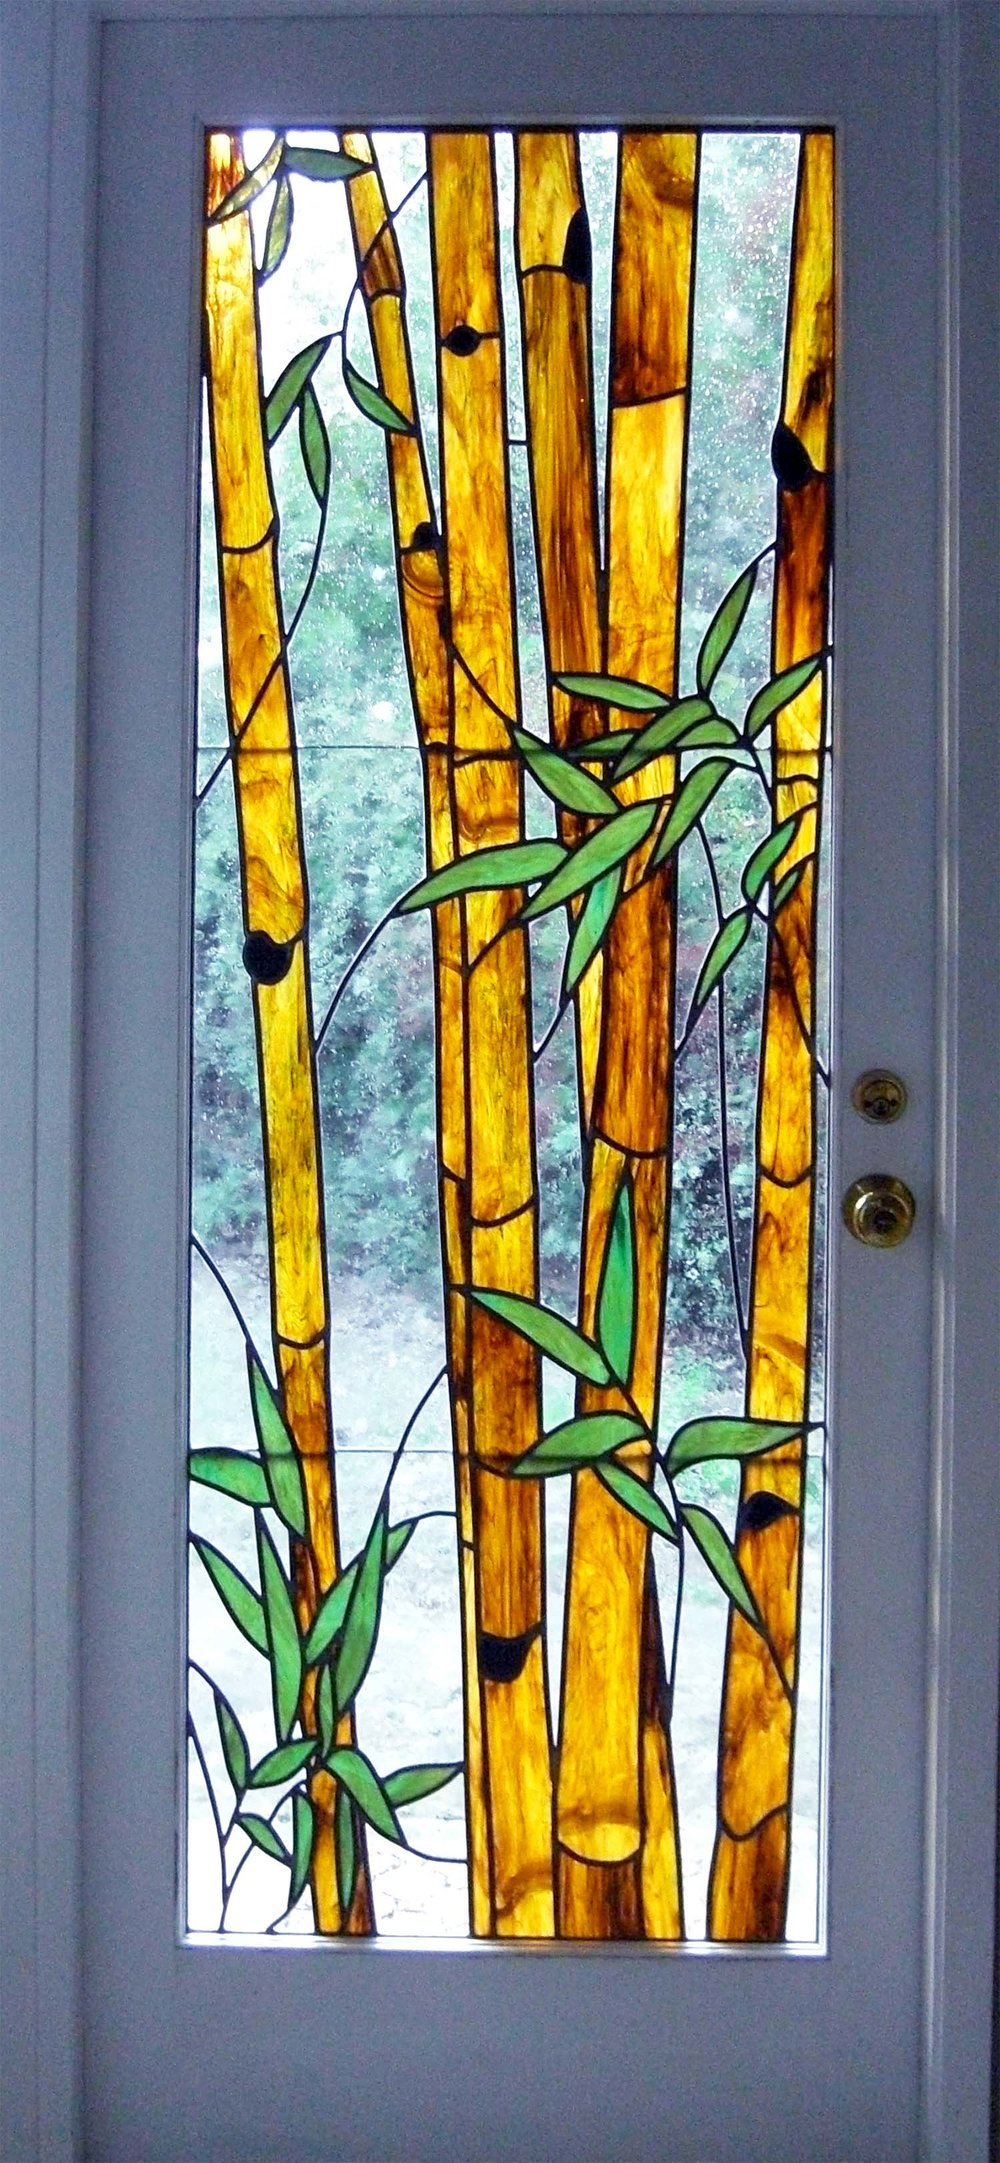 bamboo leaded glass stained glass studio palo alto atherton california san francisco san jose legacy glass.jpg